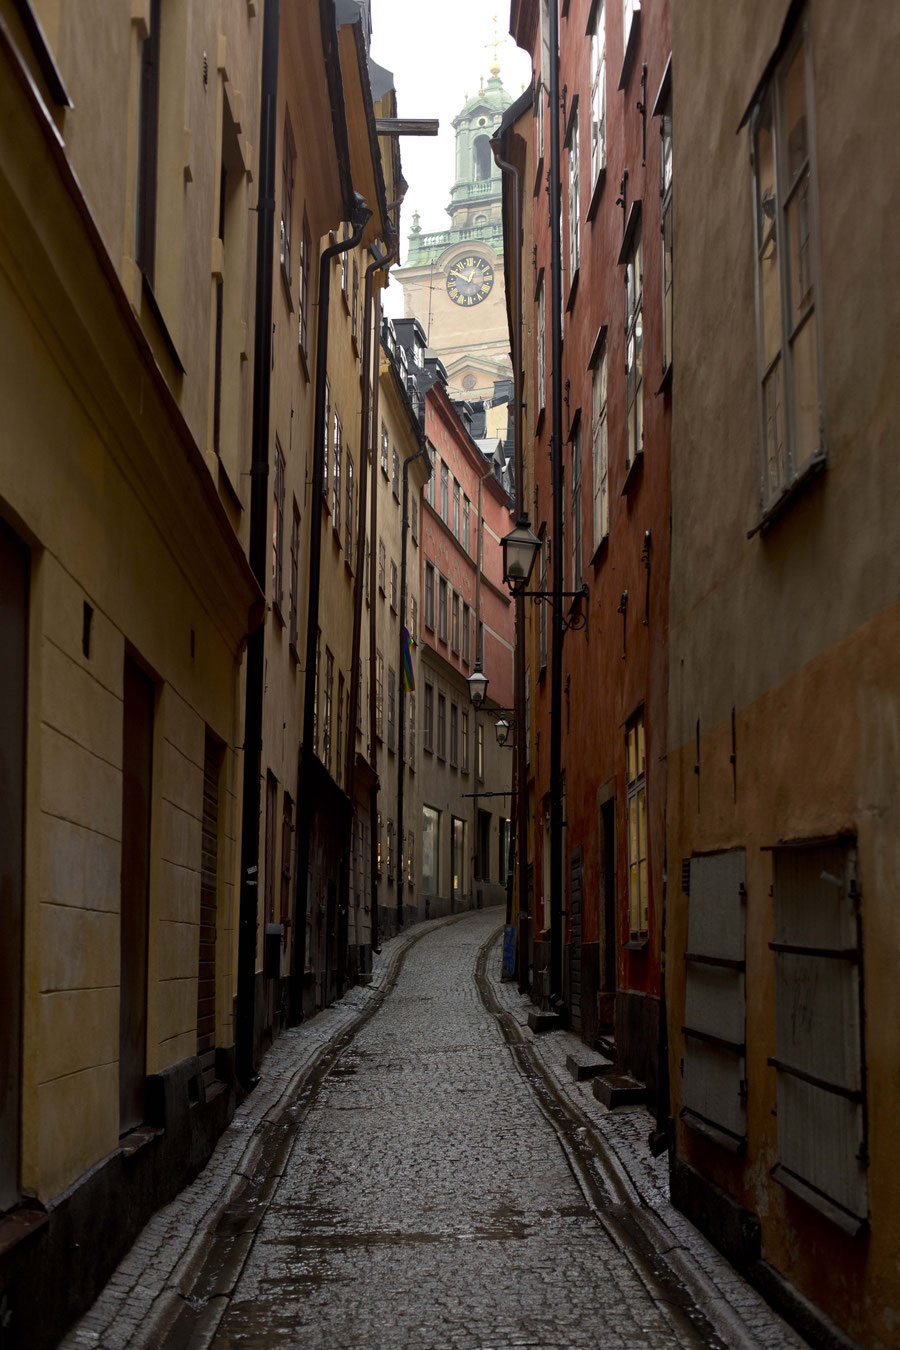 Street in the old town of Stockholm, Sweden